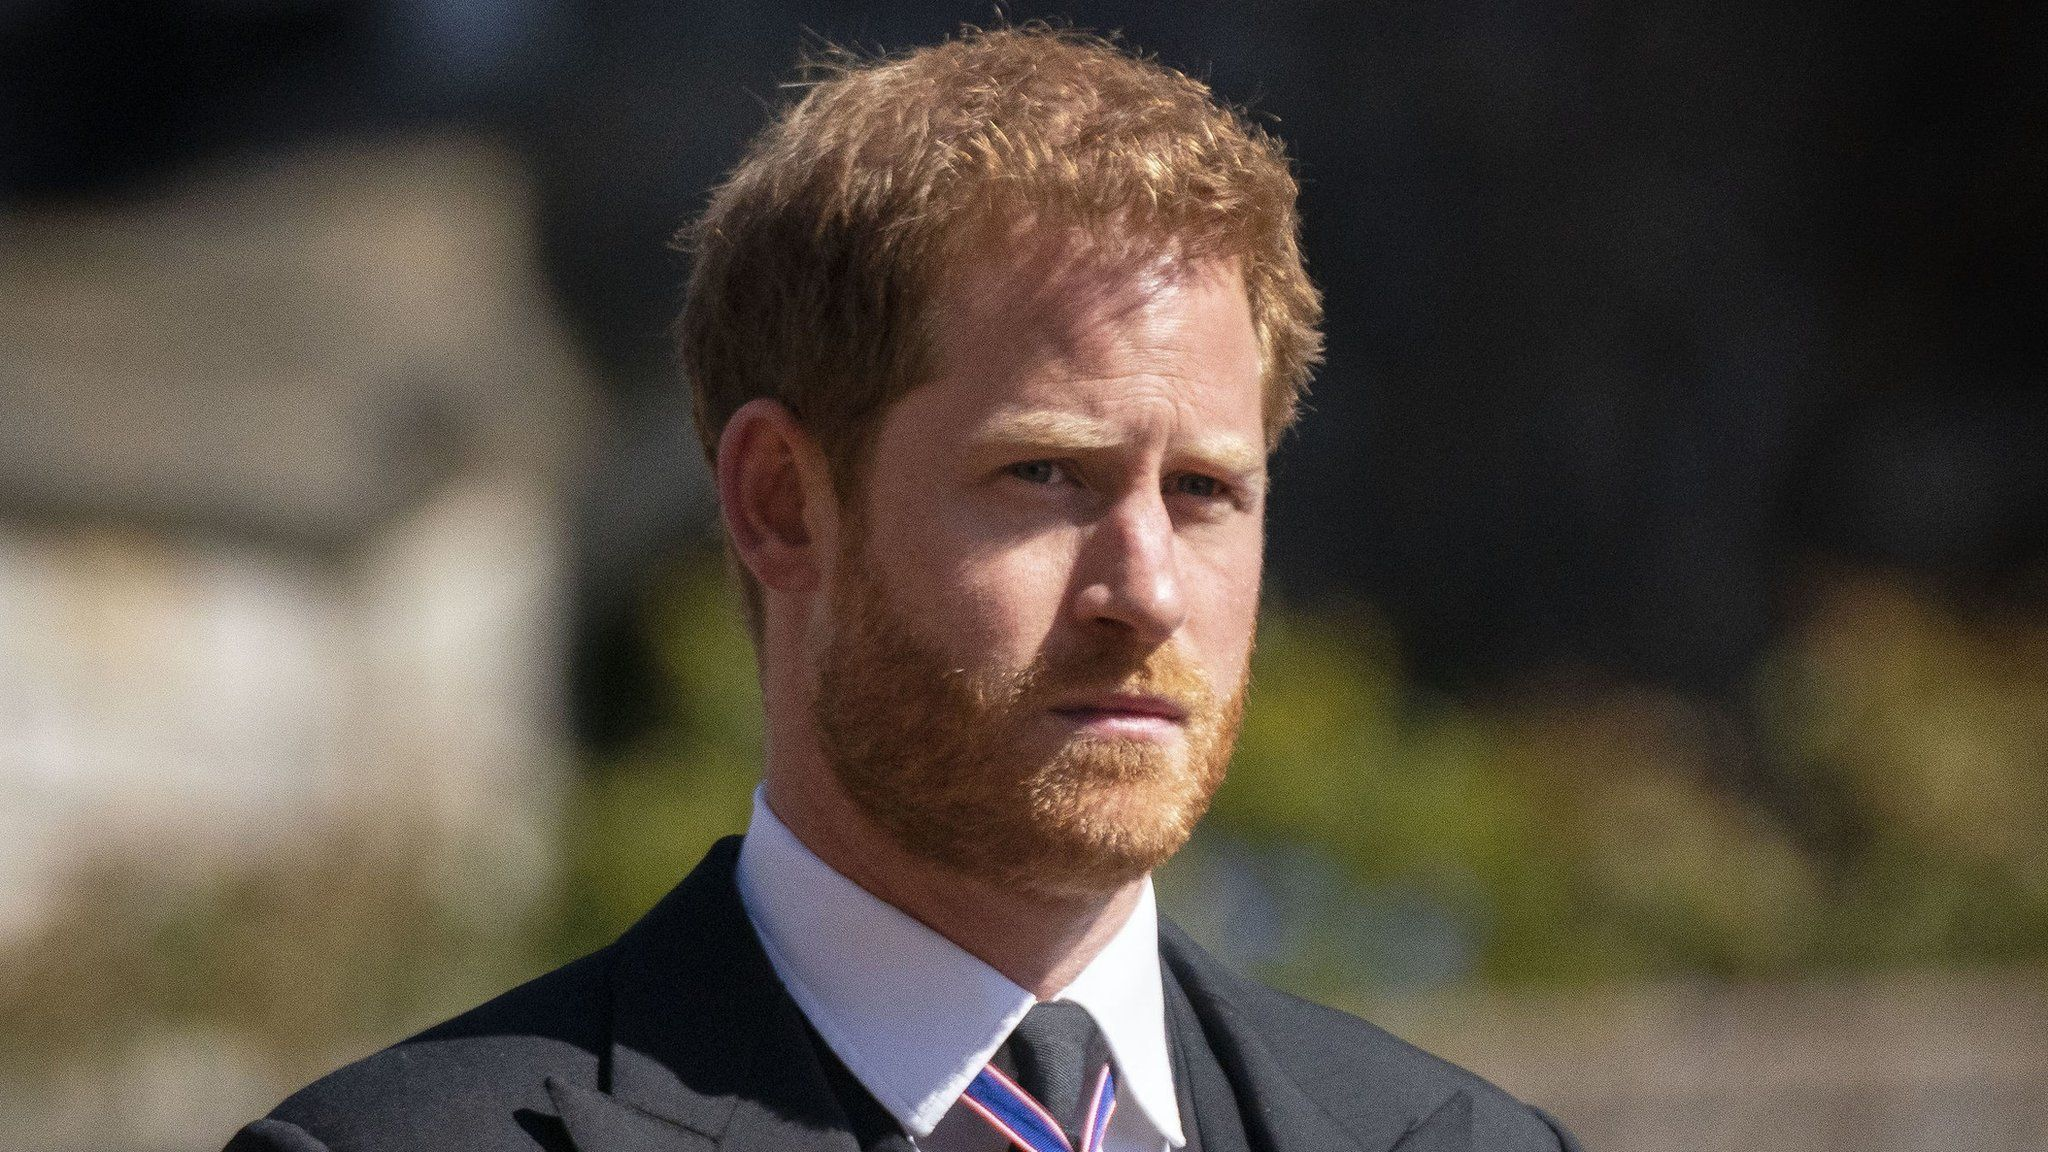 """""""prince-harry-to-release-tell-all-book-about-his-life-as-a-royal-30-years-after-princess-dianas-memoir-was-published"""""""